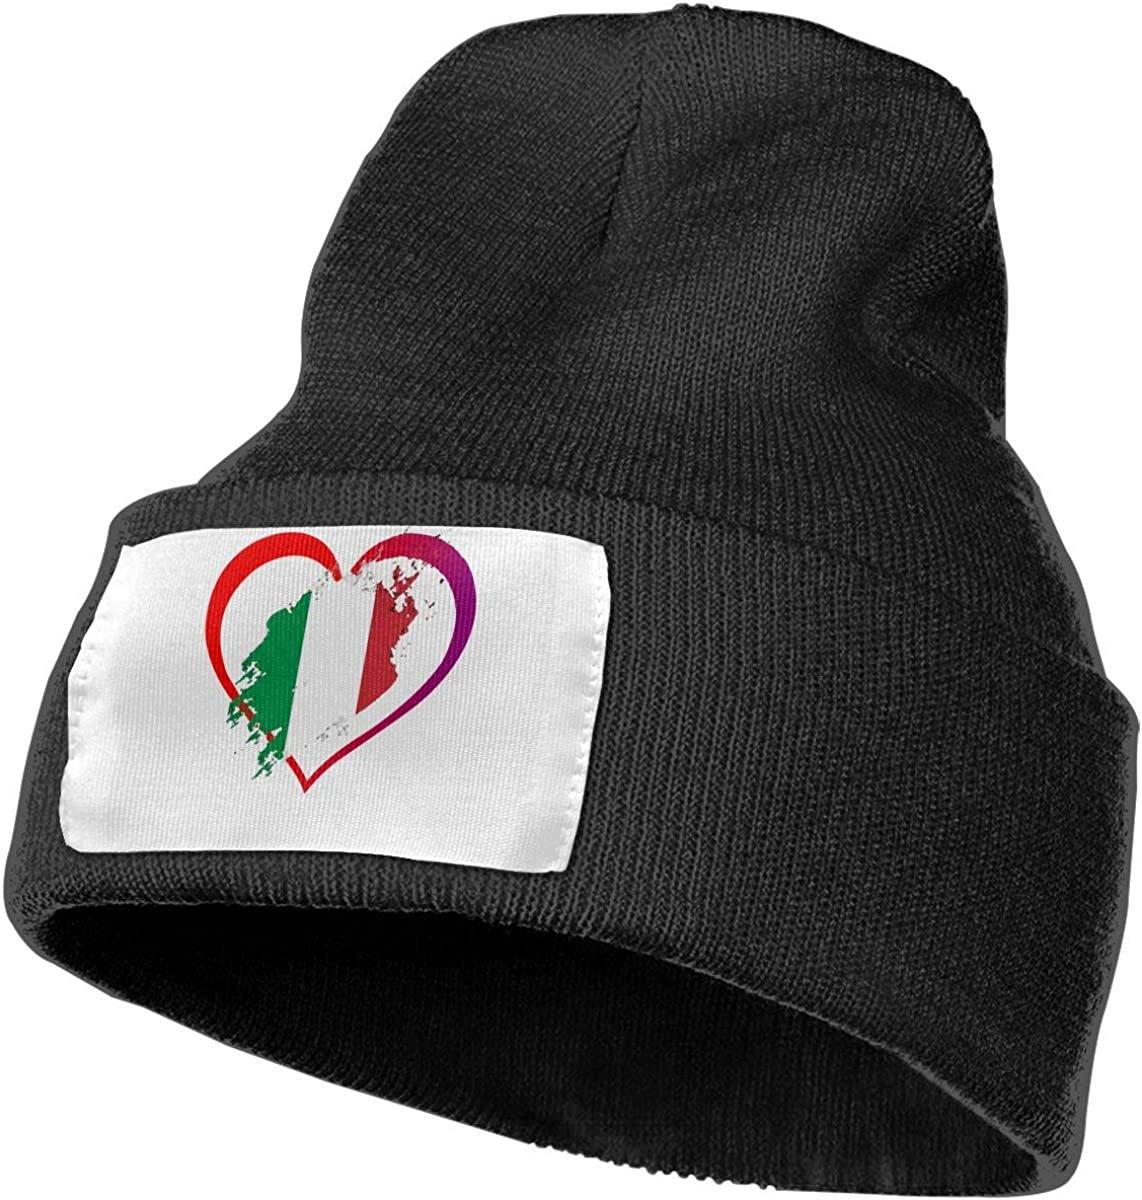 TAOMAP89 Strong Mexican Pride Flag Women and Men Skull Caps Winter Warm Stretchy Knitting Beanie Hats